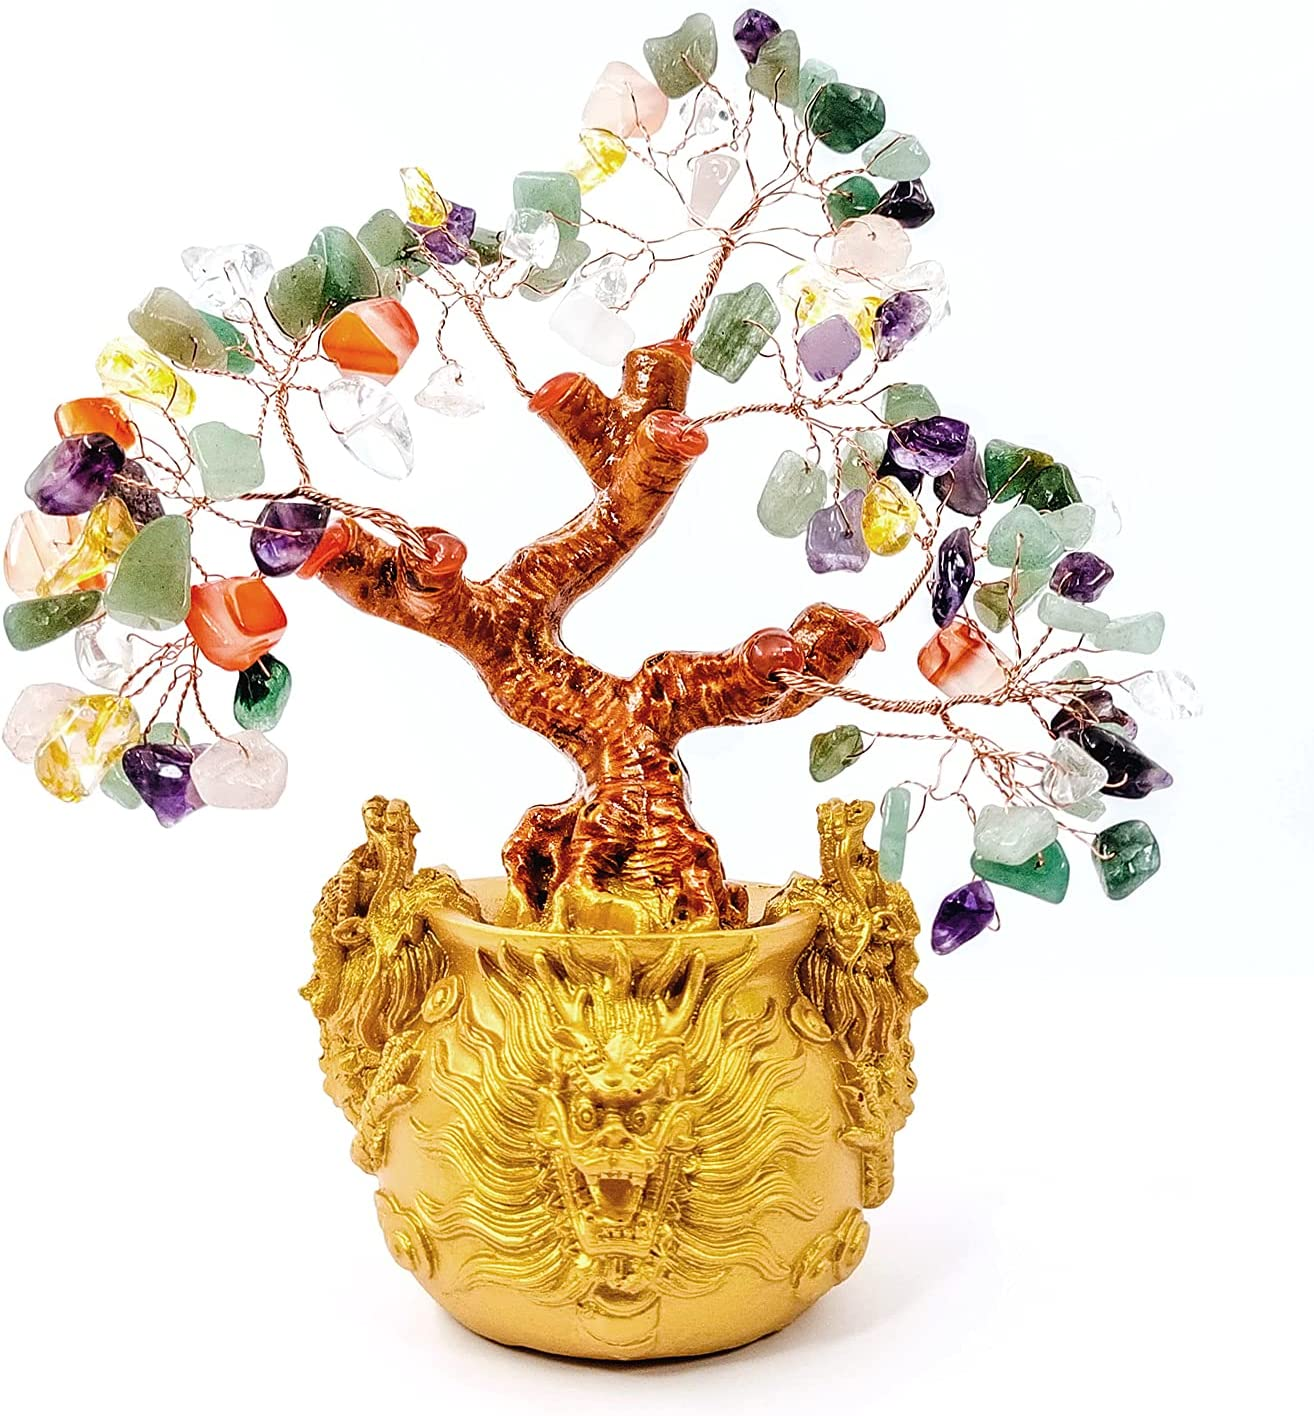 XIEHE-SHOP Crystal Fortune Tree,Gold Money Tree Feng Shui Ornament for Bringing Wealth,Luck,Prosperity,Success,Crystal Money Tree Feng Shui Bonsai Decoration for Home,Office (7 Colour)